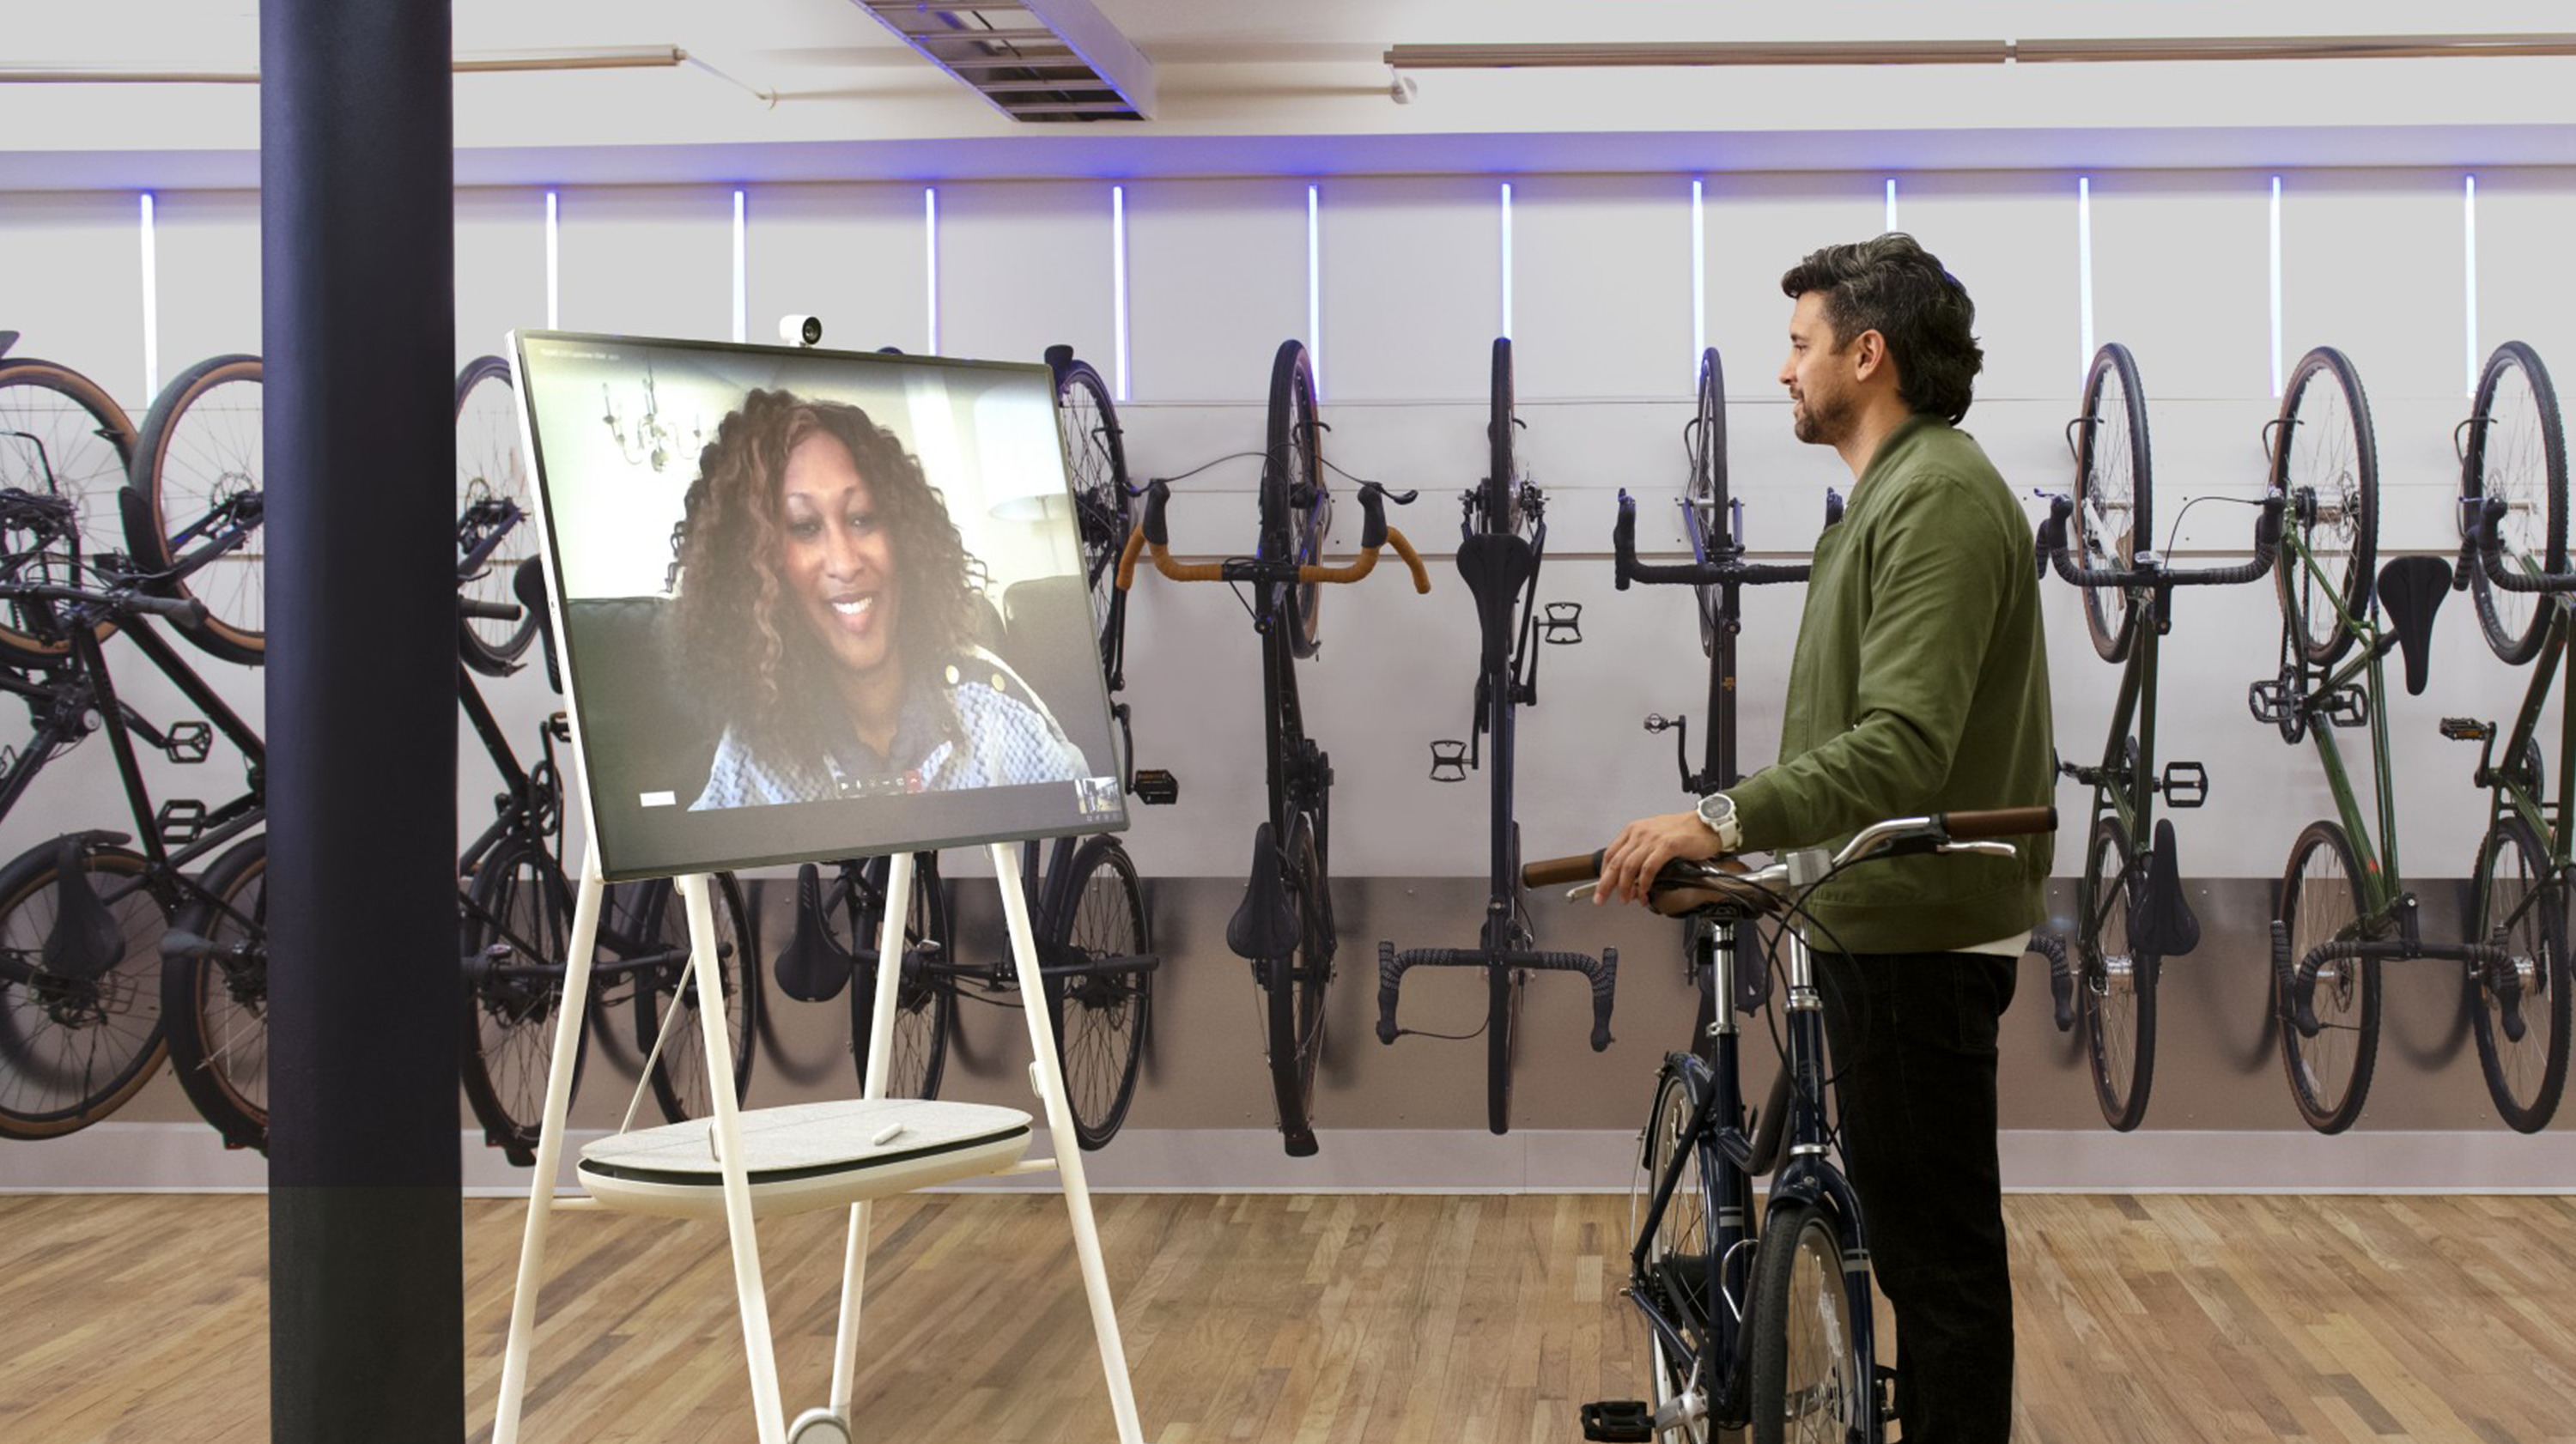 A man in a bicycle shop has a conversation with a woman on a Surface Hub.